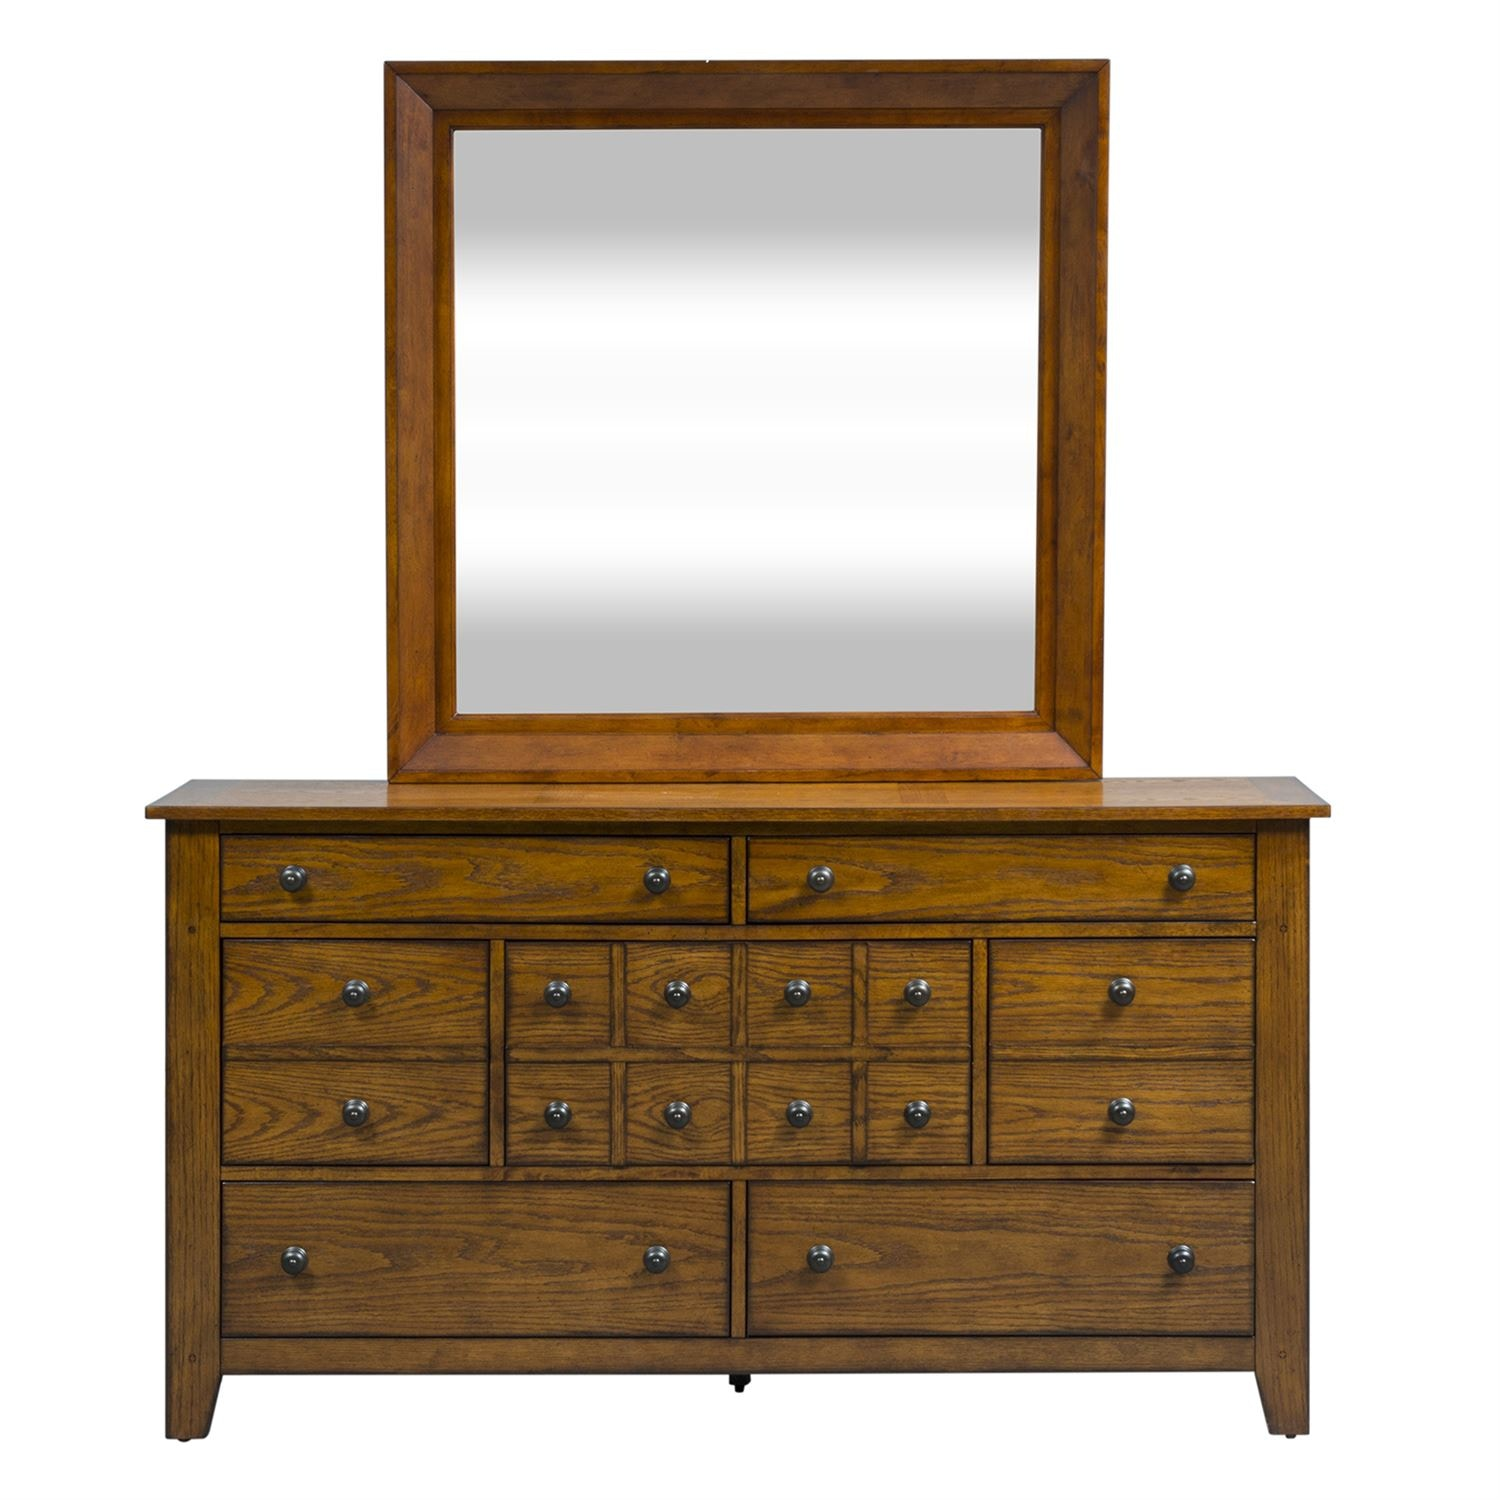 Liberty Furniture Youth Dresser And Mirror 175 BR DM   Turner Furniture  Company   Avon Park And Sebring, FL